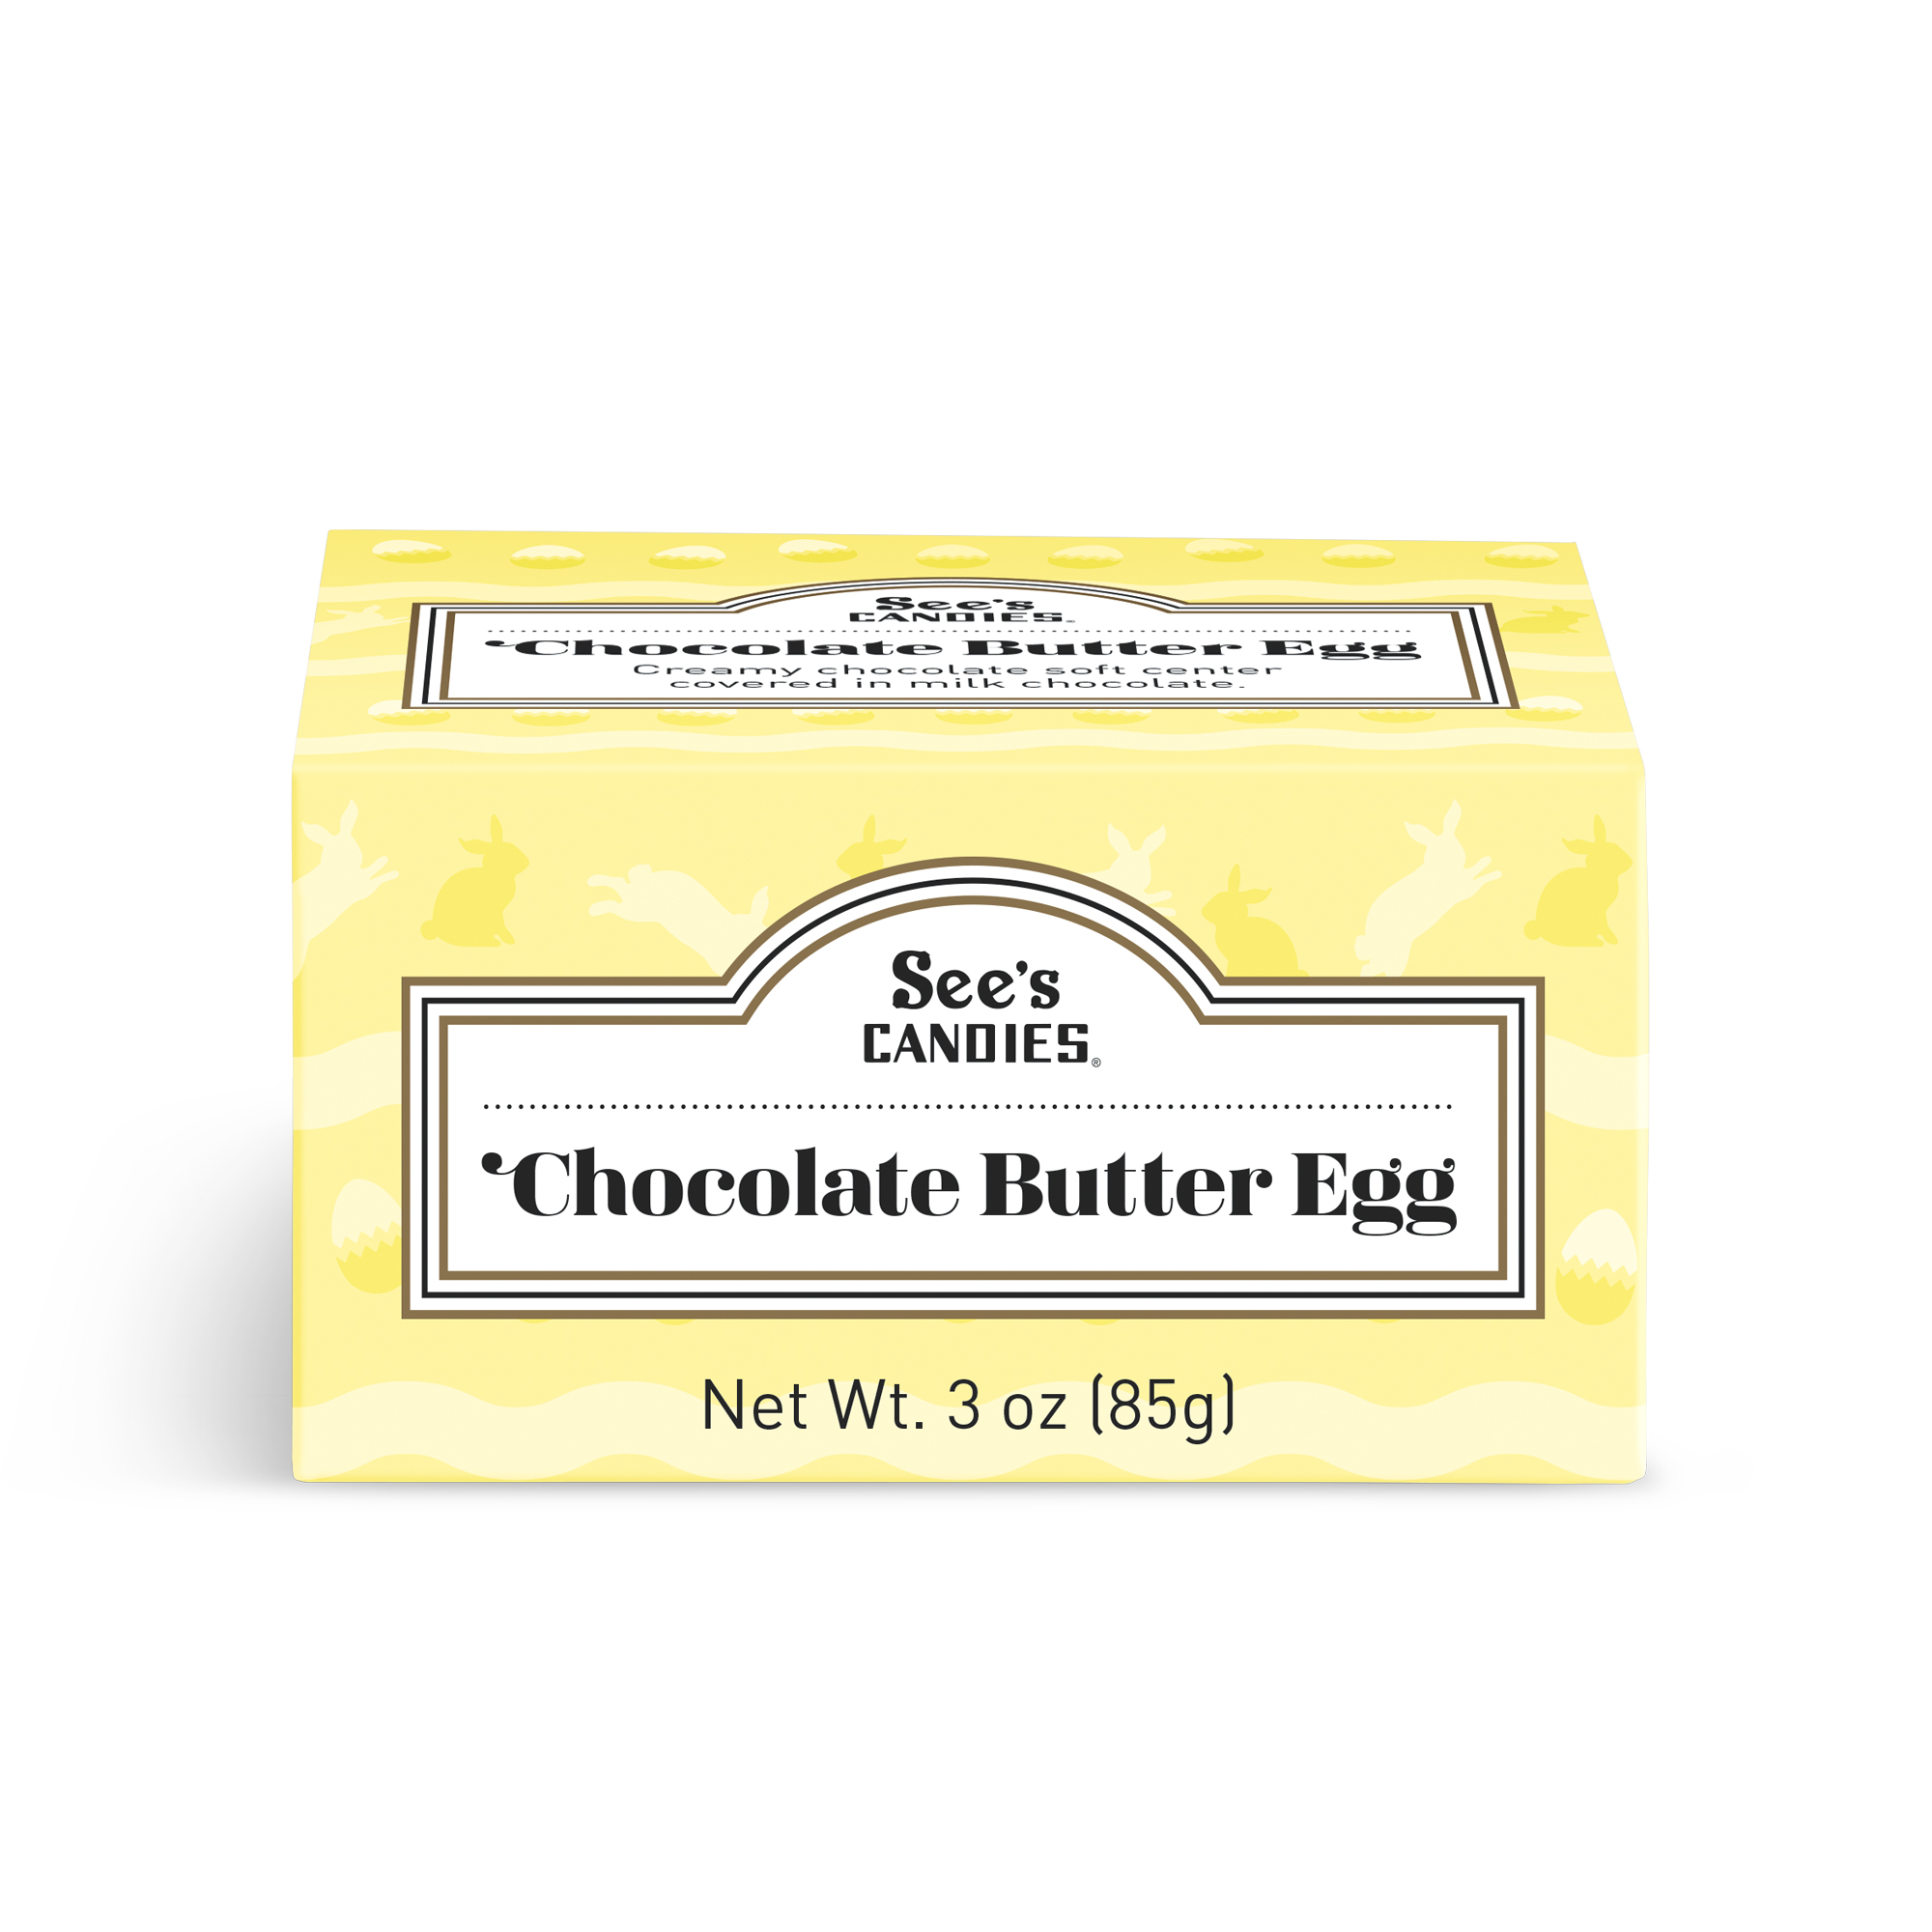 View of Chocolate Butter Egg 2